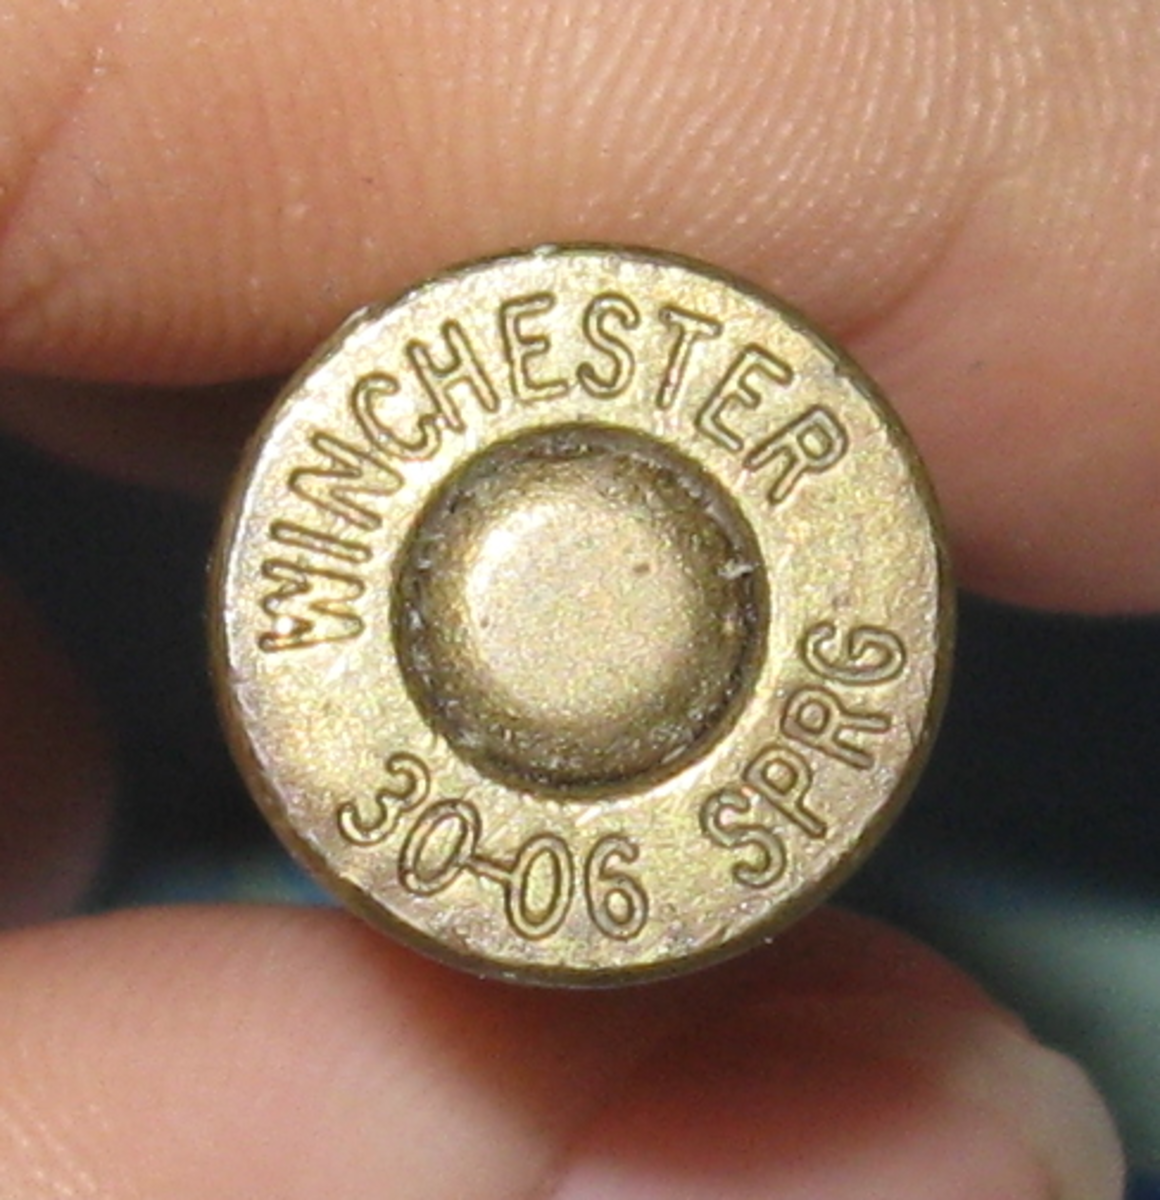 .30-06 Springfield: One Cartridge to Rule Them All